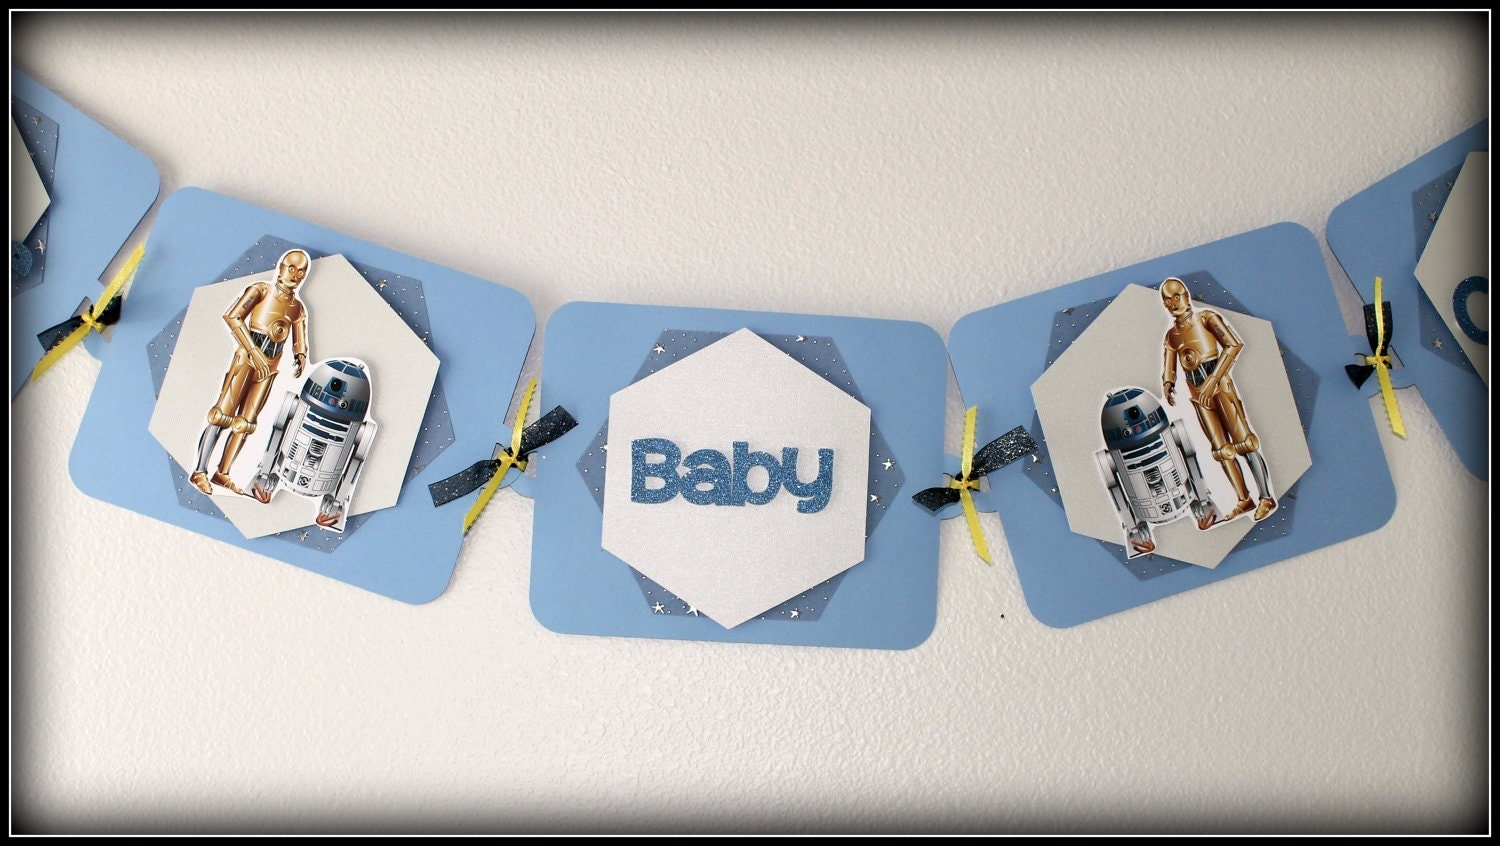 star wars baby shower banner boy or girl